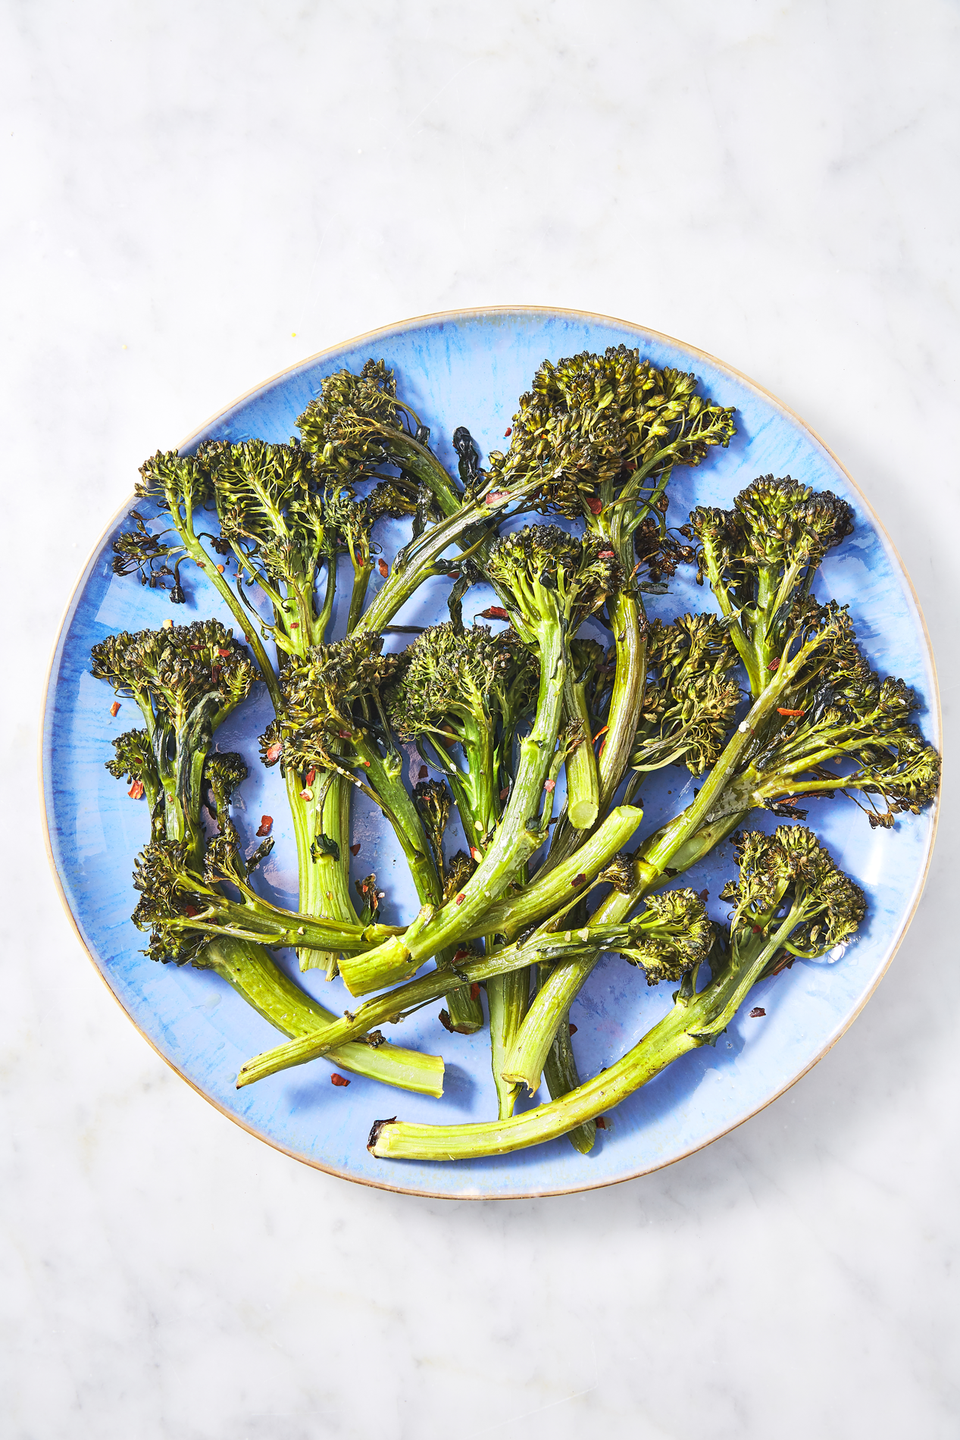 "<p>This is an easy, perfect, healthy side dish to accompany any meal.</p><p>Get the recipe from <a href=""https://www.delish.com/cooking/recipe-ideas/a26966406/broccolini-recipe/"" rel=""nofollow noopener"" target=""_blank"" data-ylk=""slk:Delish"" class=""link rapid-noclick-resp"">Delish</a>.</p>"